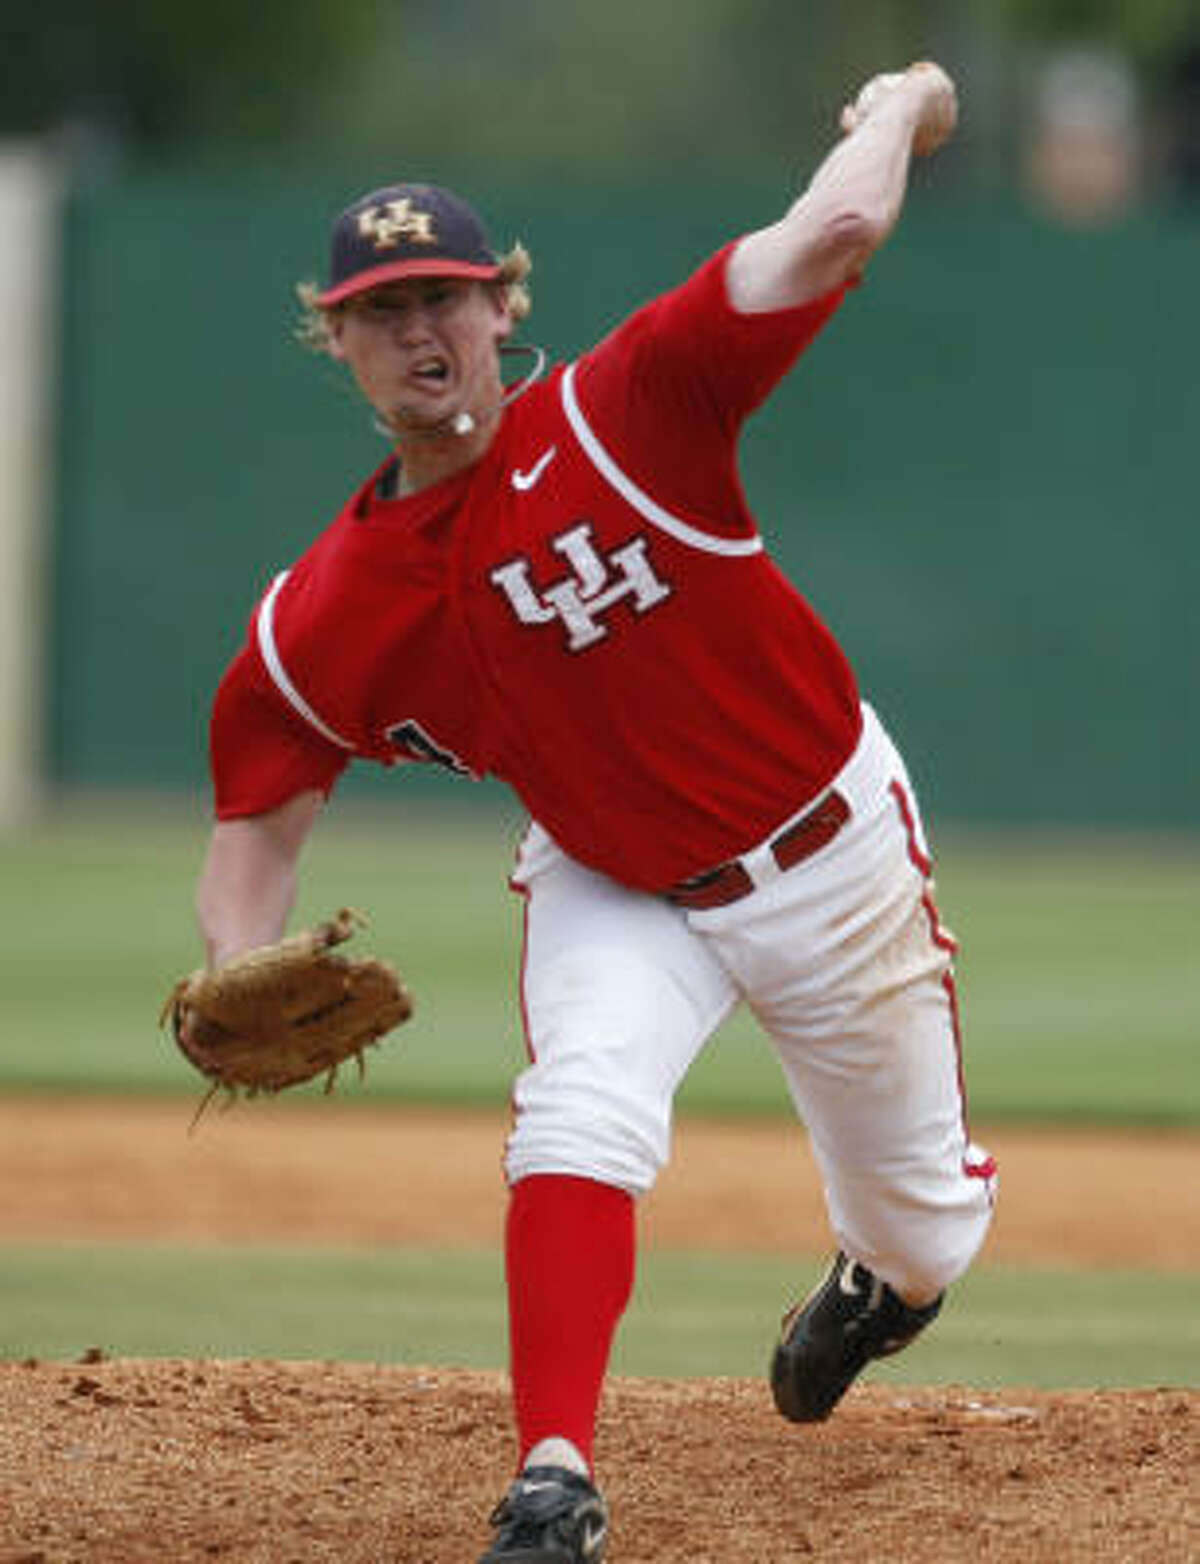 Starting pitcher Wes Musick, shown here against Rice, helped UH to a win over Marshall.